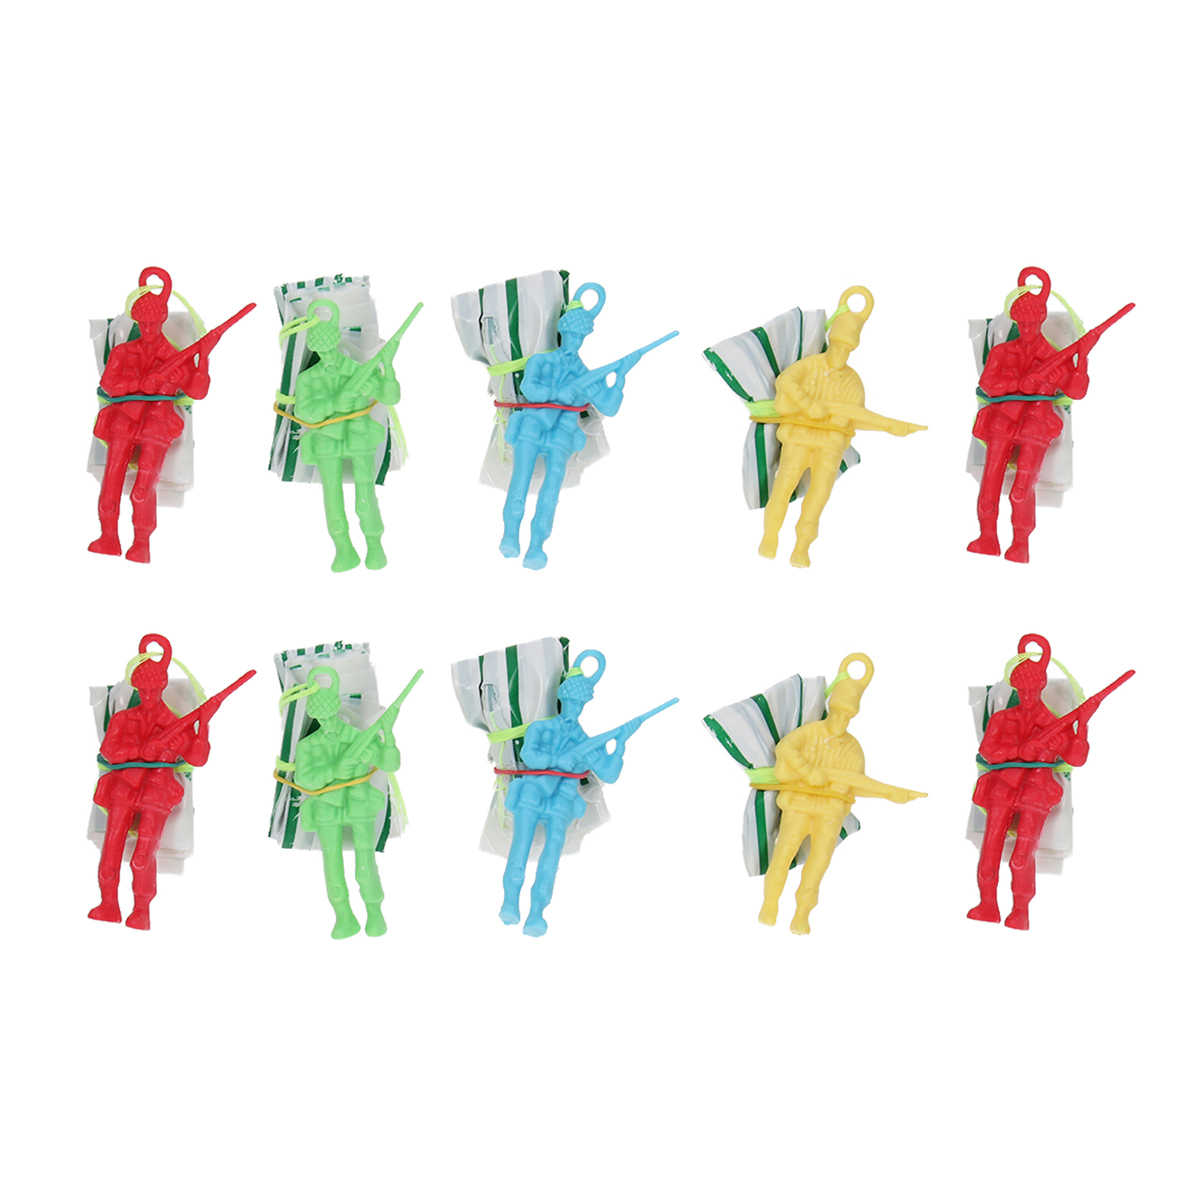 BESPORTBLE Mini Paratroopers with Parachutes Plastic Army Men Soldier Action Figure Toy Military Playset Christmas Stocking Stuffers Goody Bag Fillers Birthday Gifts 10pcs